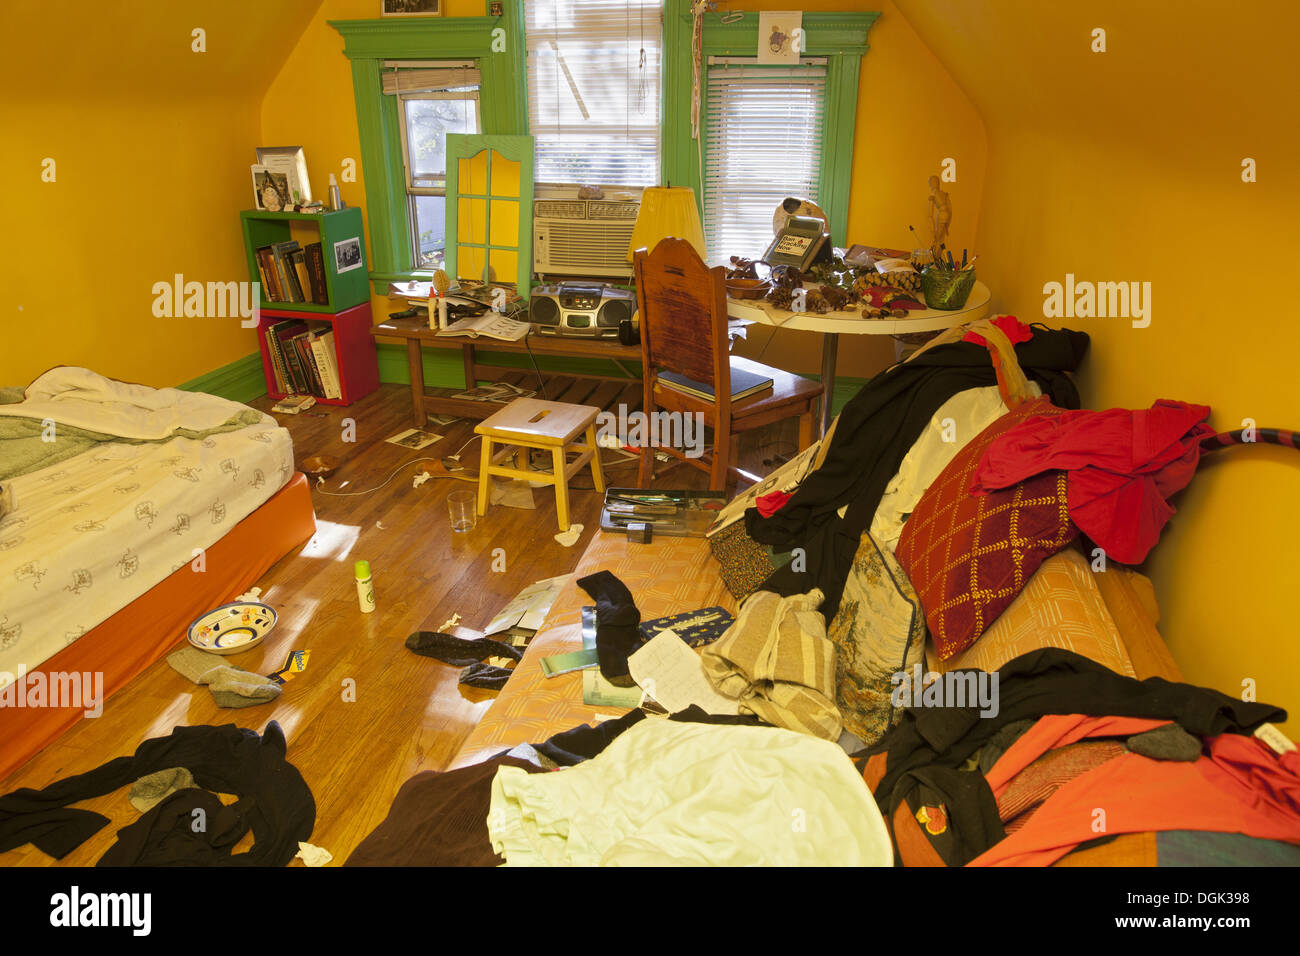 Very messy bedroom of a young person. - Stock Image